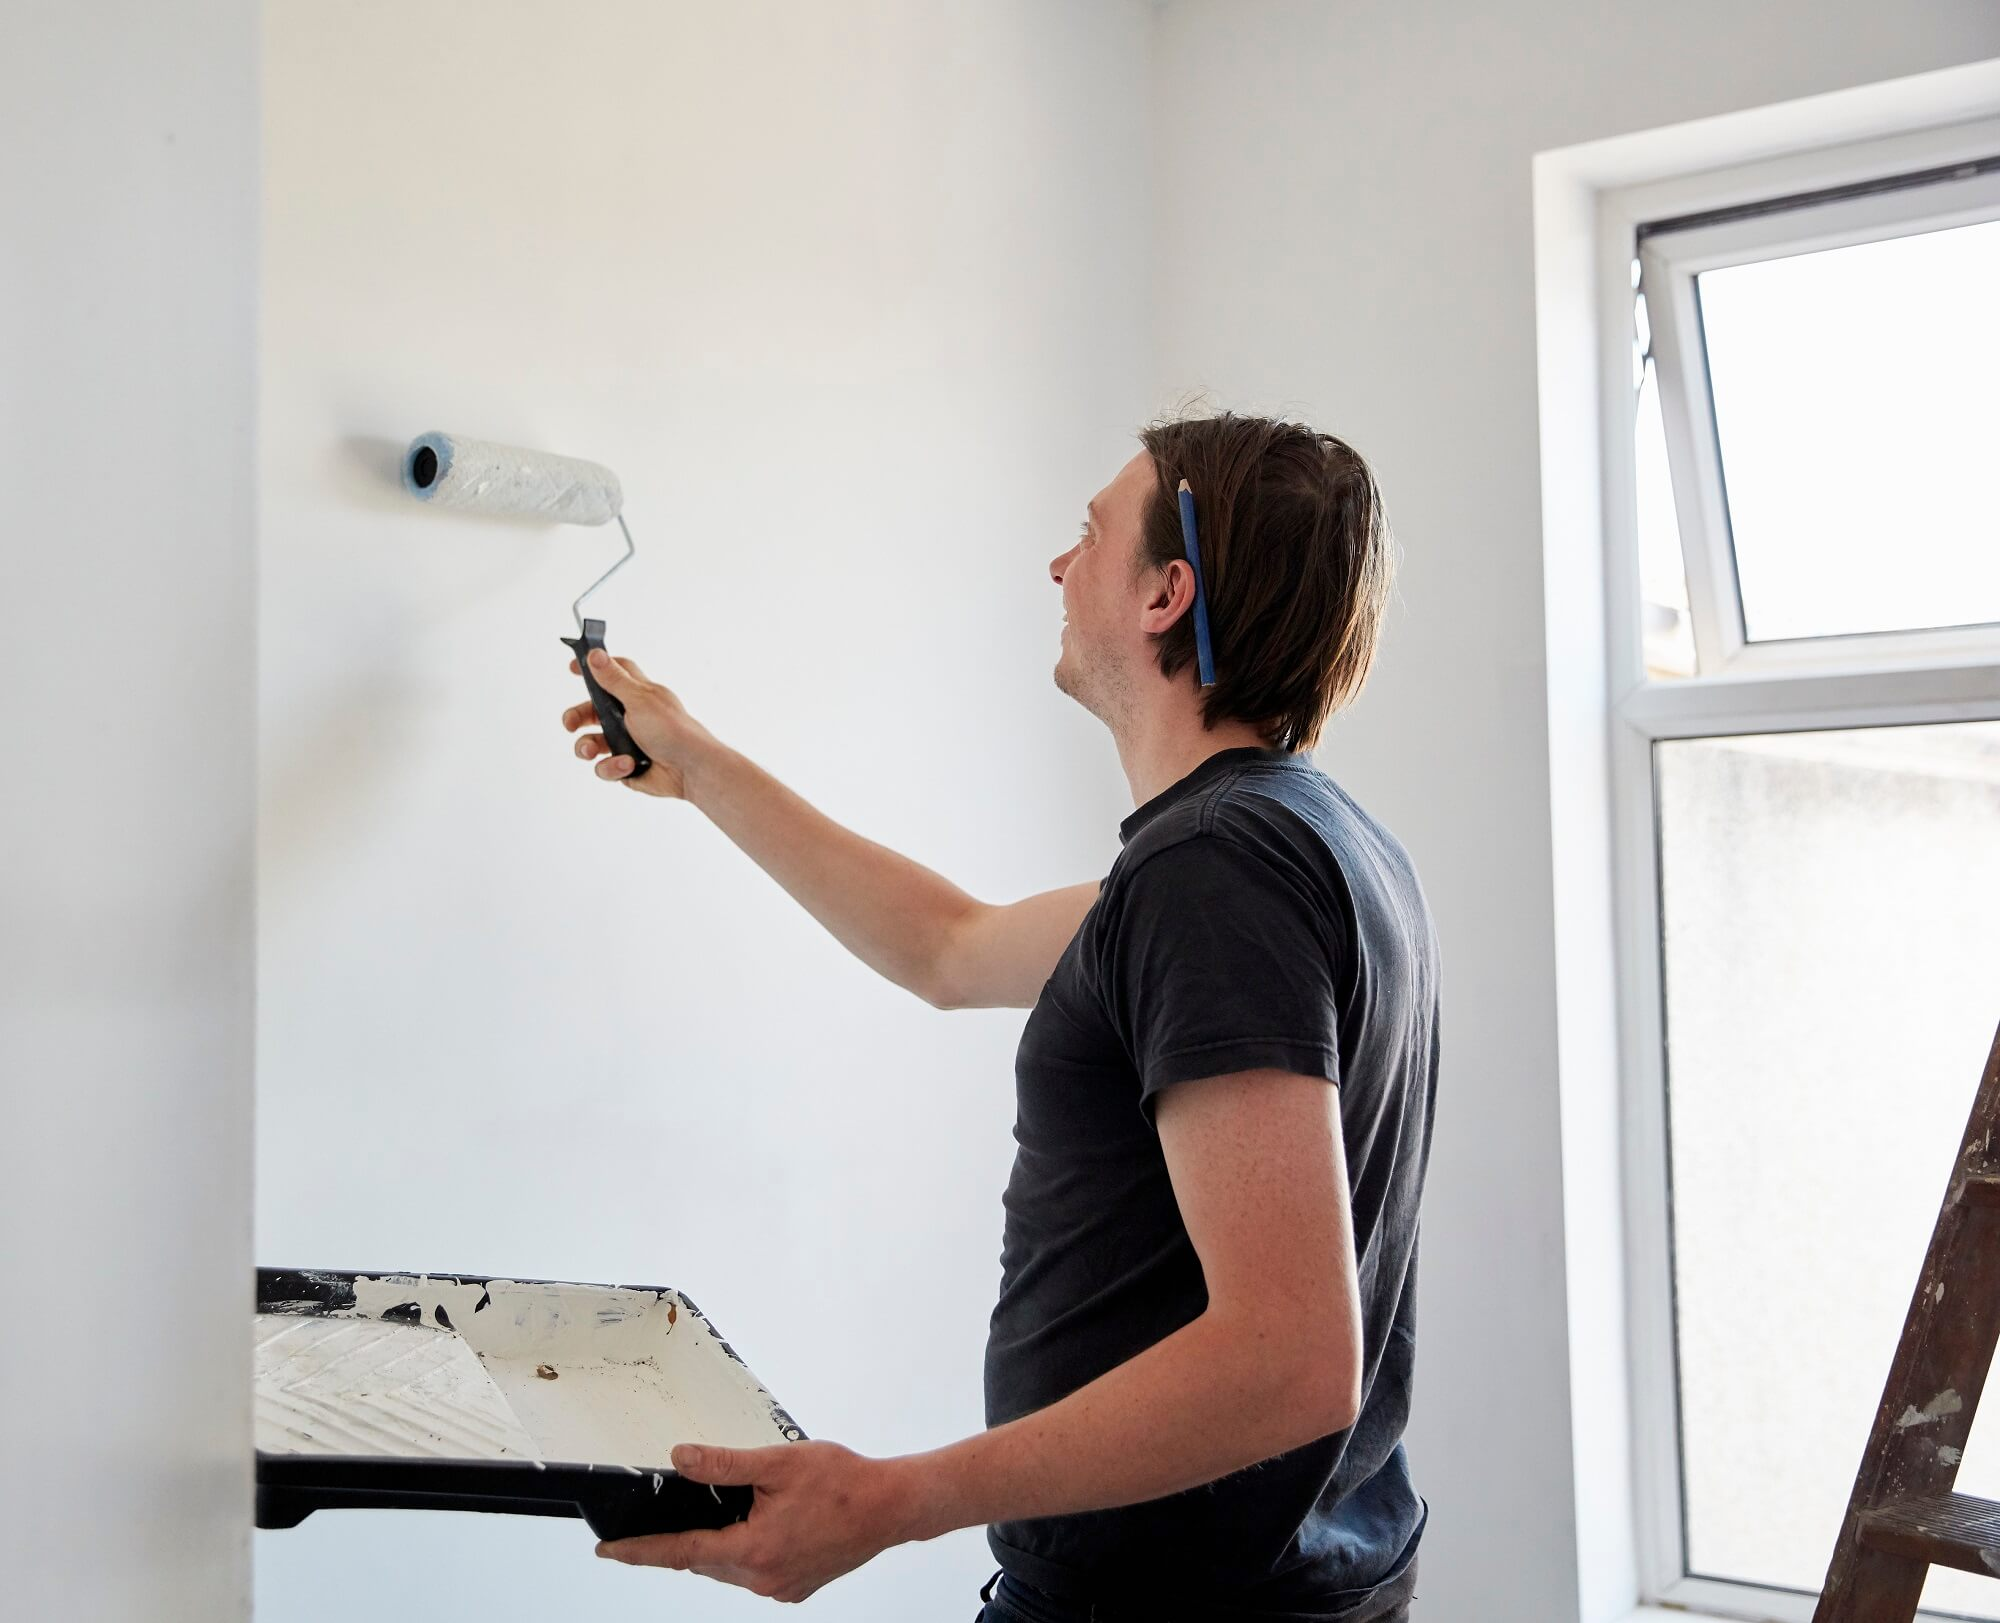 A painter using a paint roller and holding a paint tray, decorating a room.